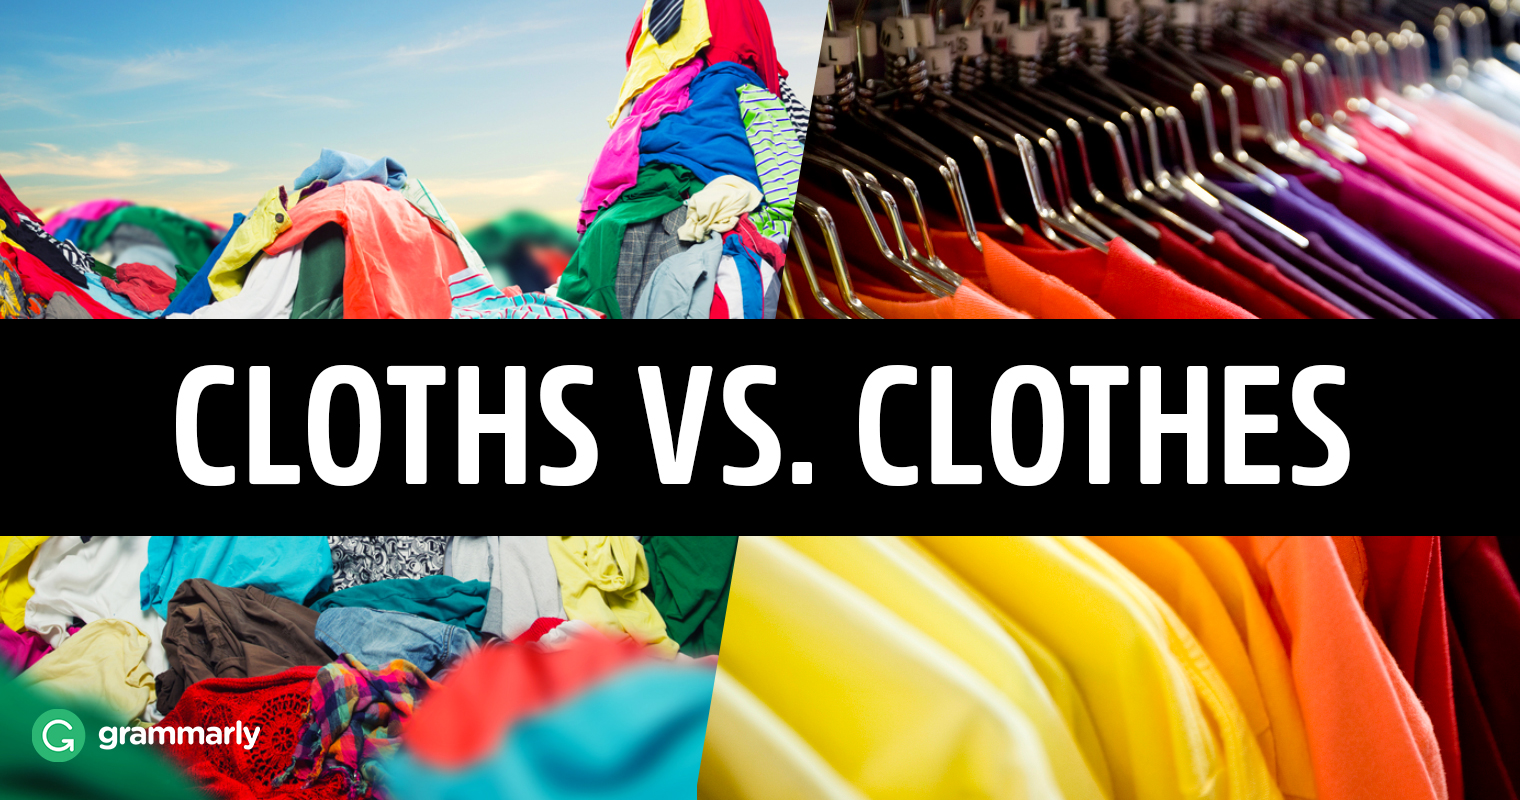 Cloths vs. Clothes—What's the Difference?